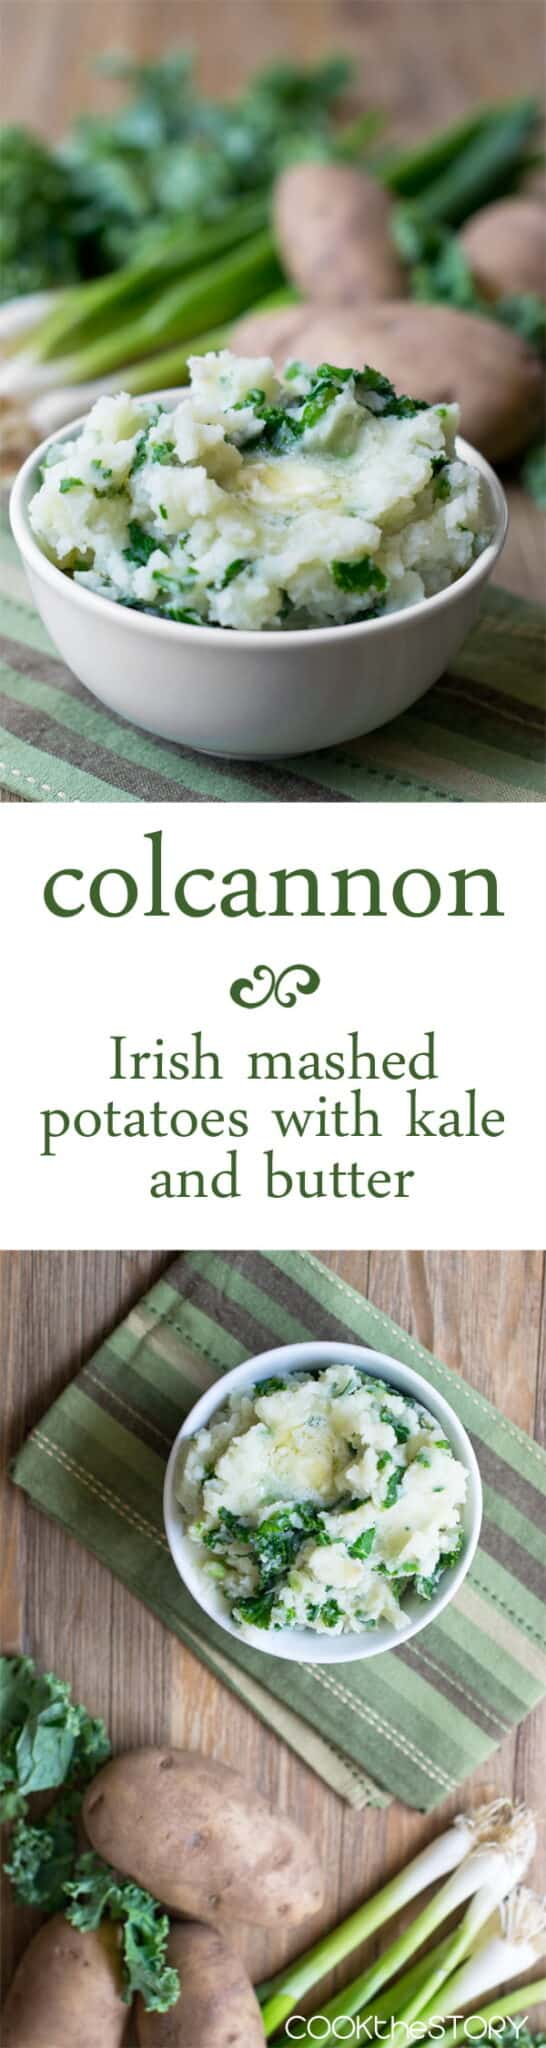 Colcannon: A simple Irish dish of mashed potatoes, kale, green onions and butter. A delicious way to celebrate St. Patrick's Day